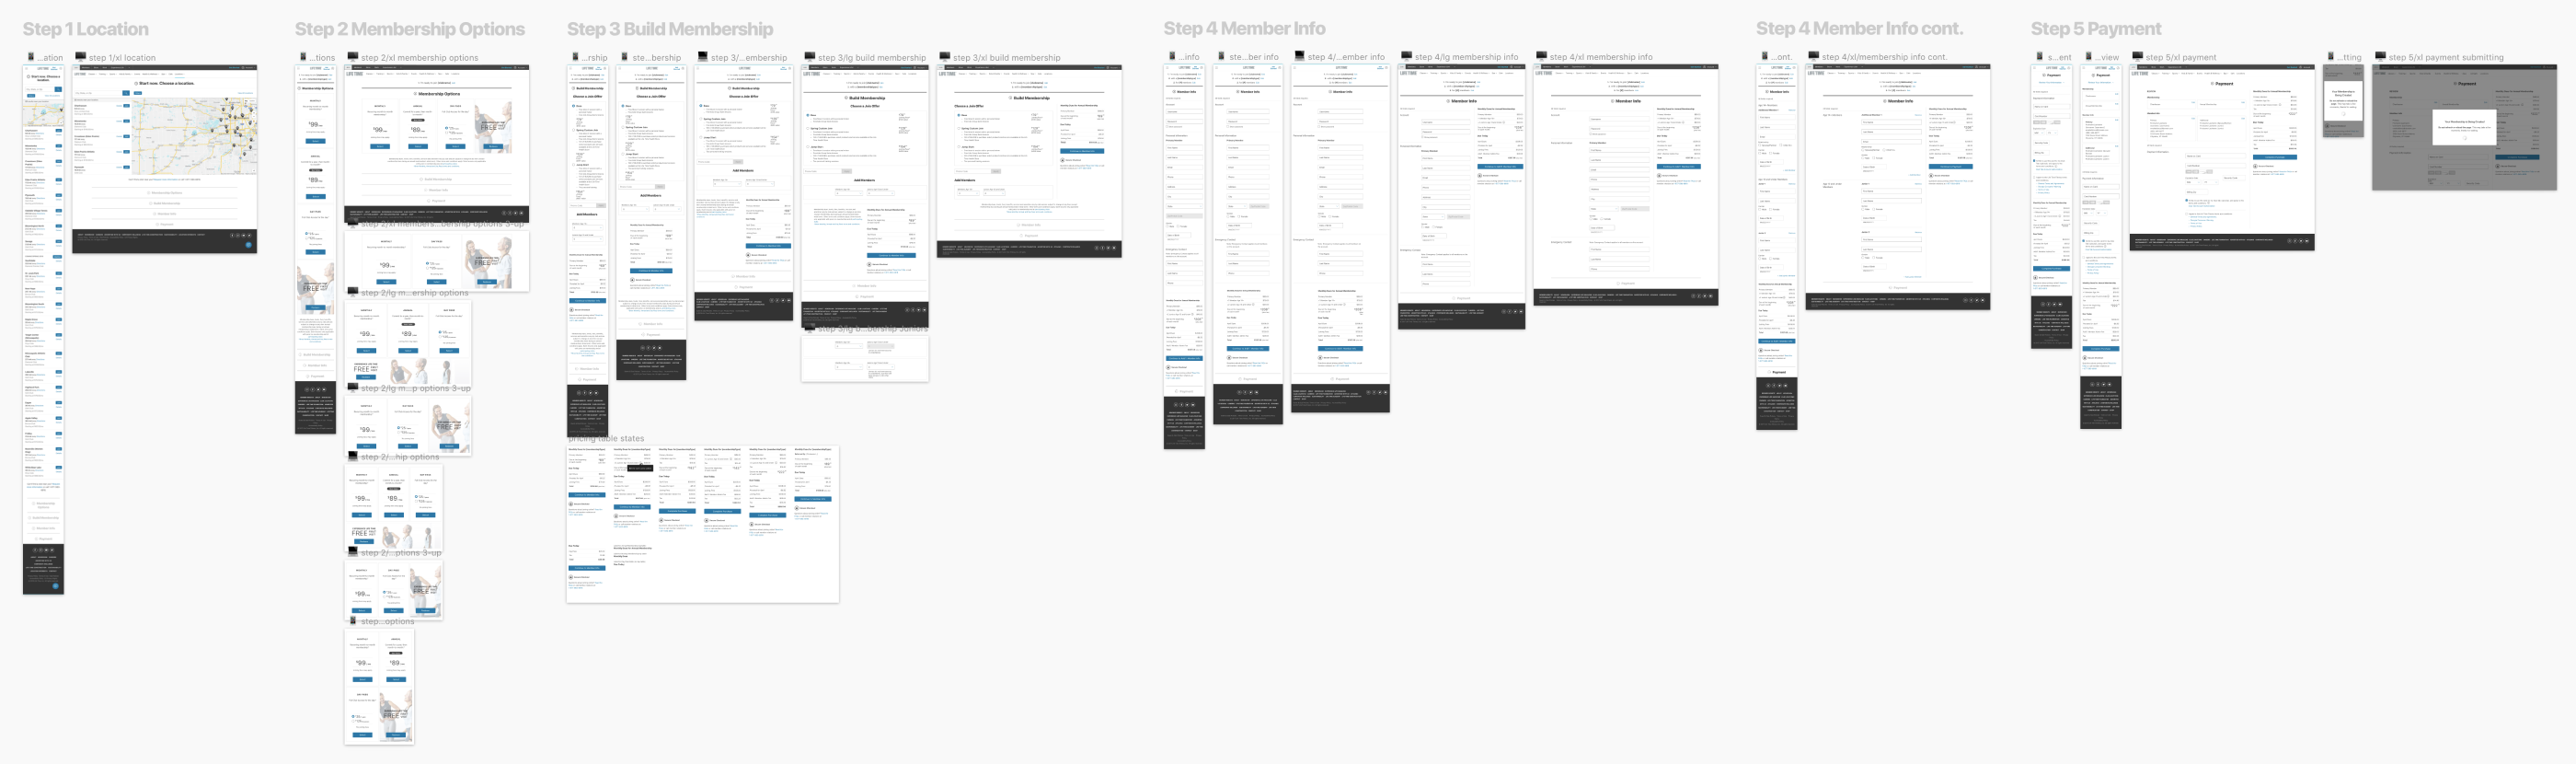 Wireframes of All Steps in the Website at Different Breakpoints